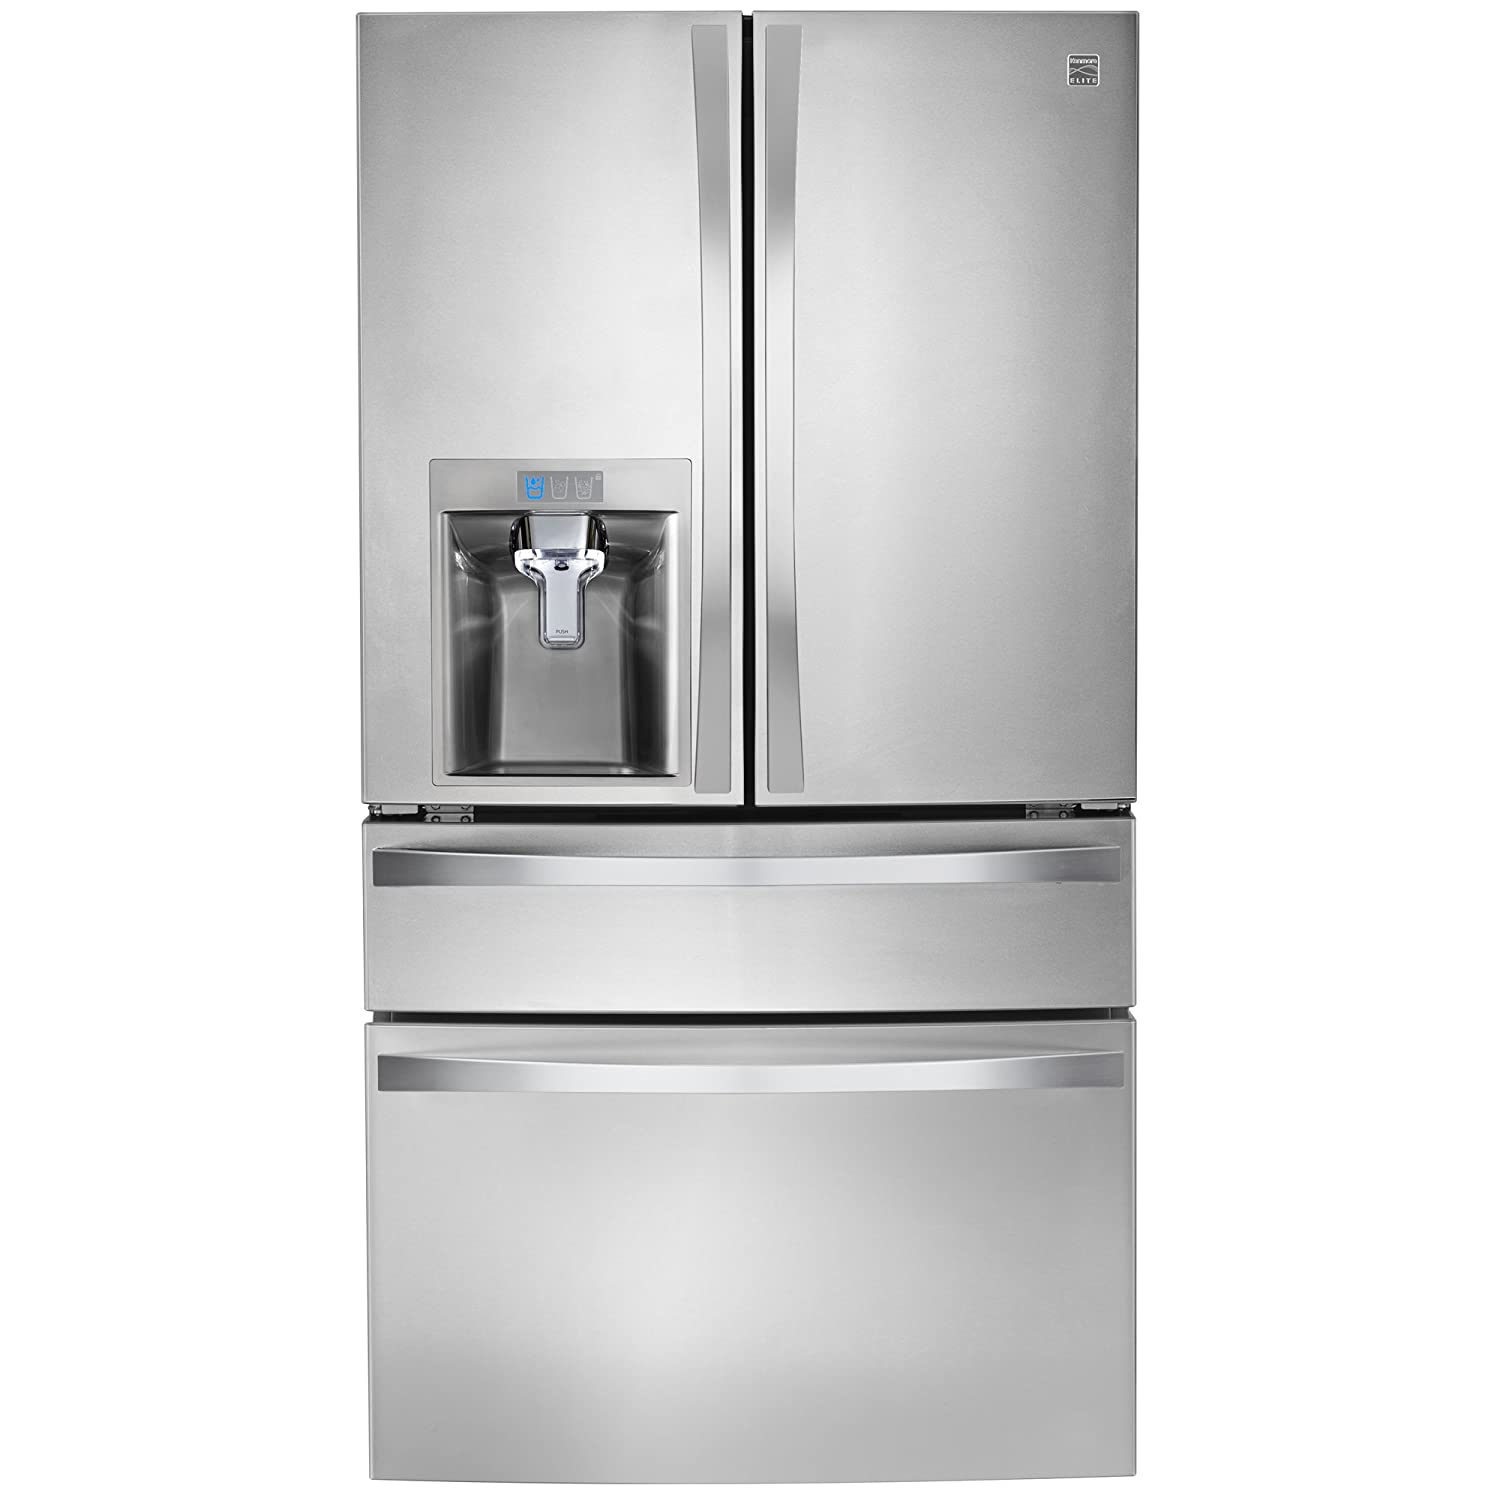 Kenmore Elite 72483 29.9 cu. ft. 4 Door Bottom Freezer Refrigerator with Dispenser in Stainless Steel, includes delivery and hookup